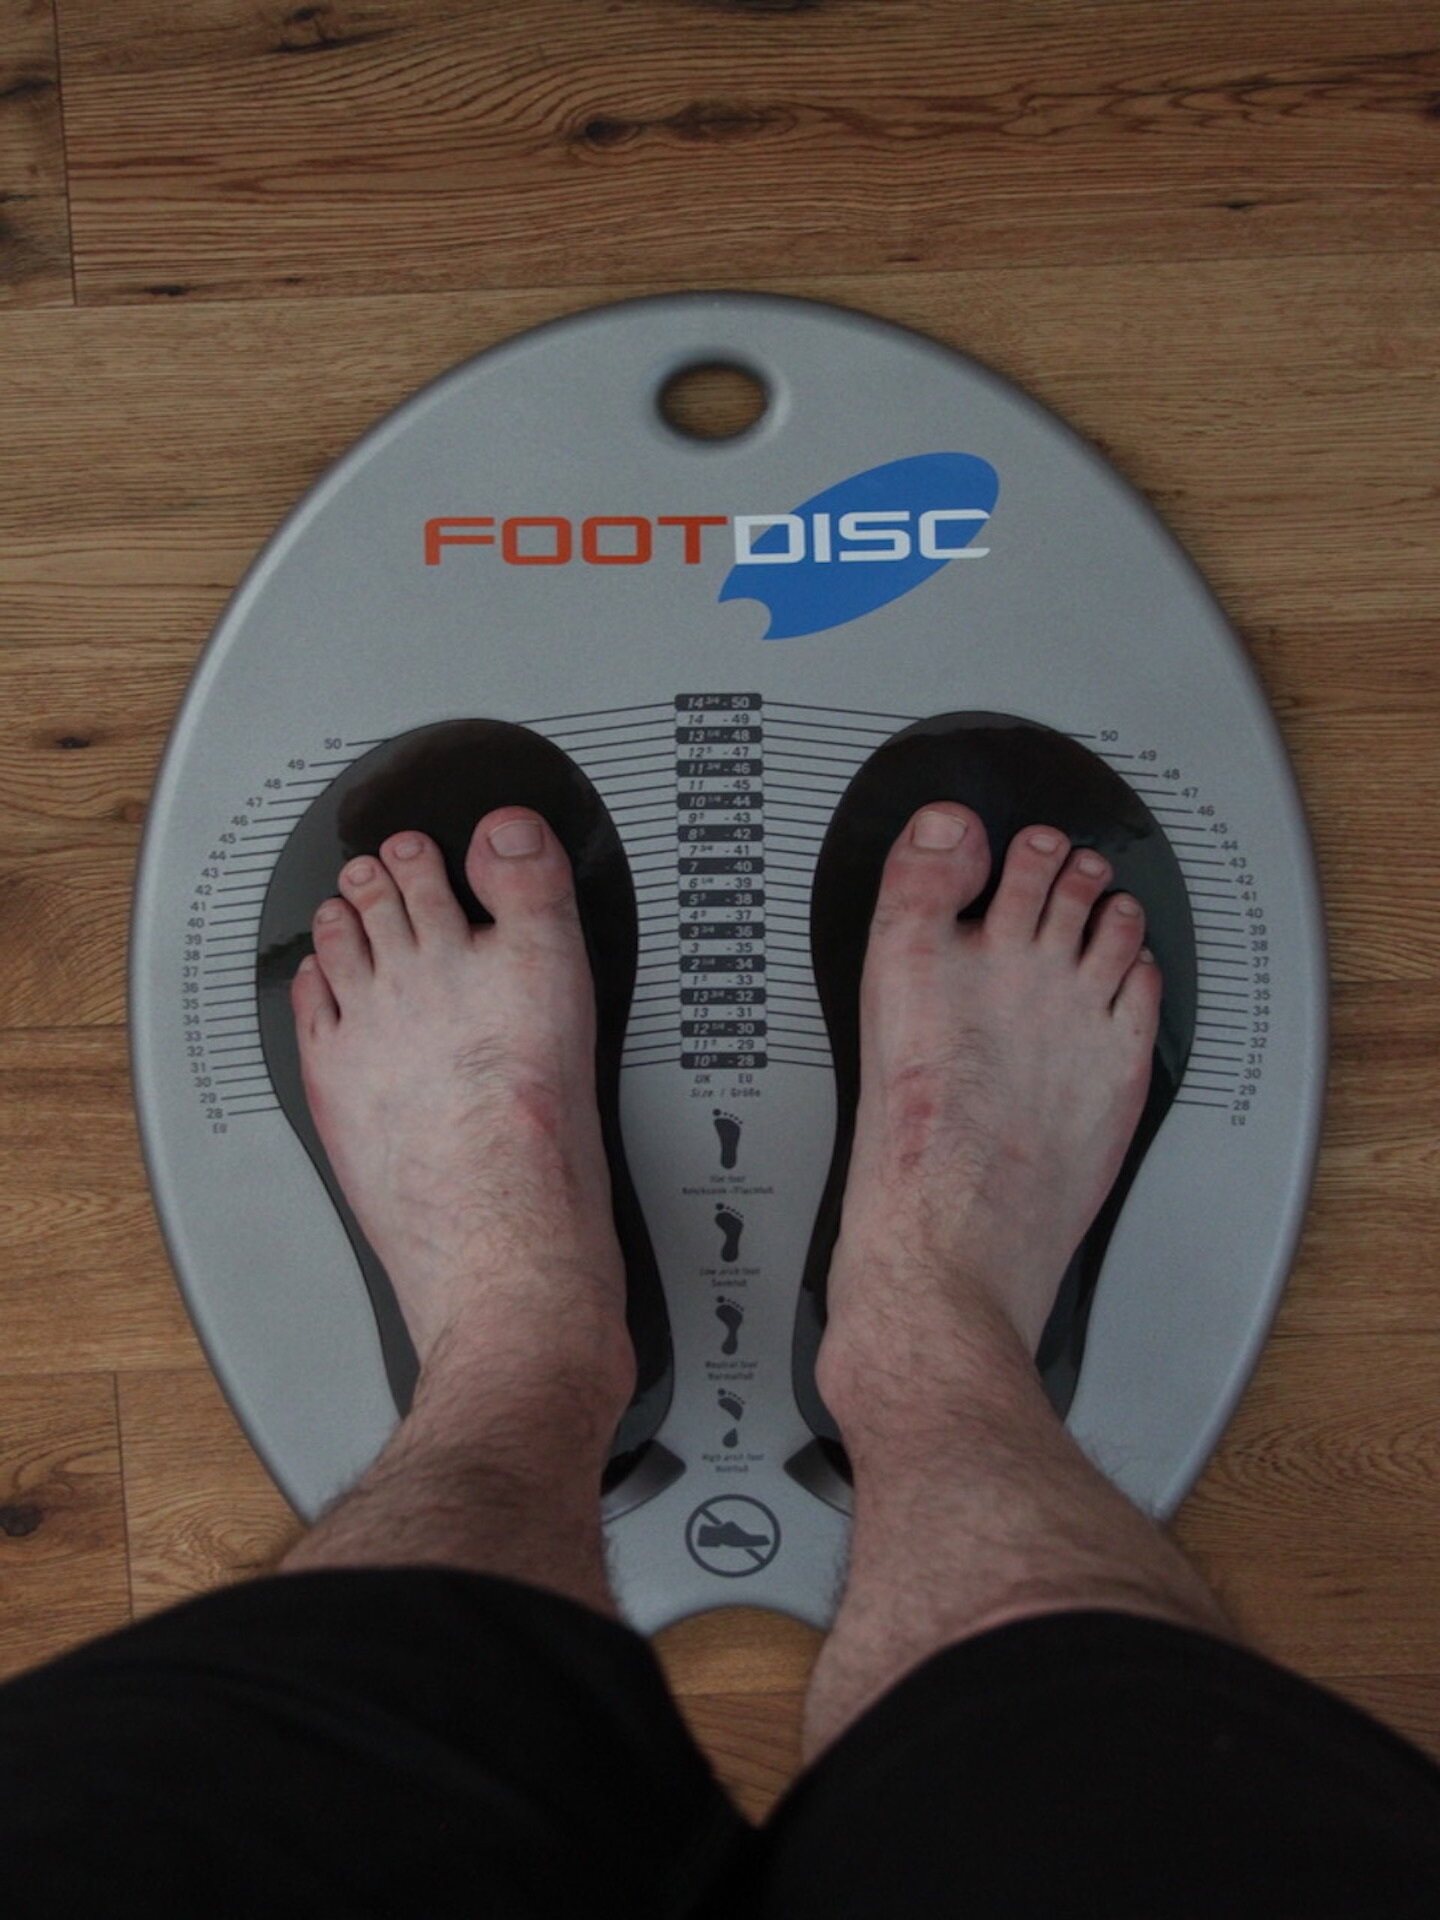 Foot_Disc_neu_1